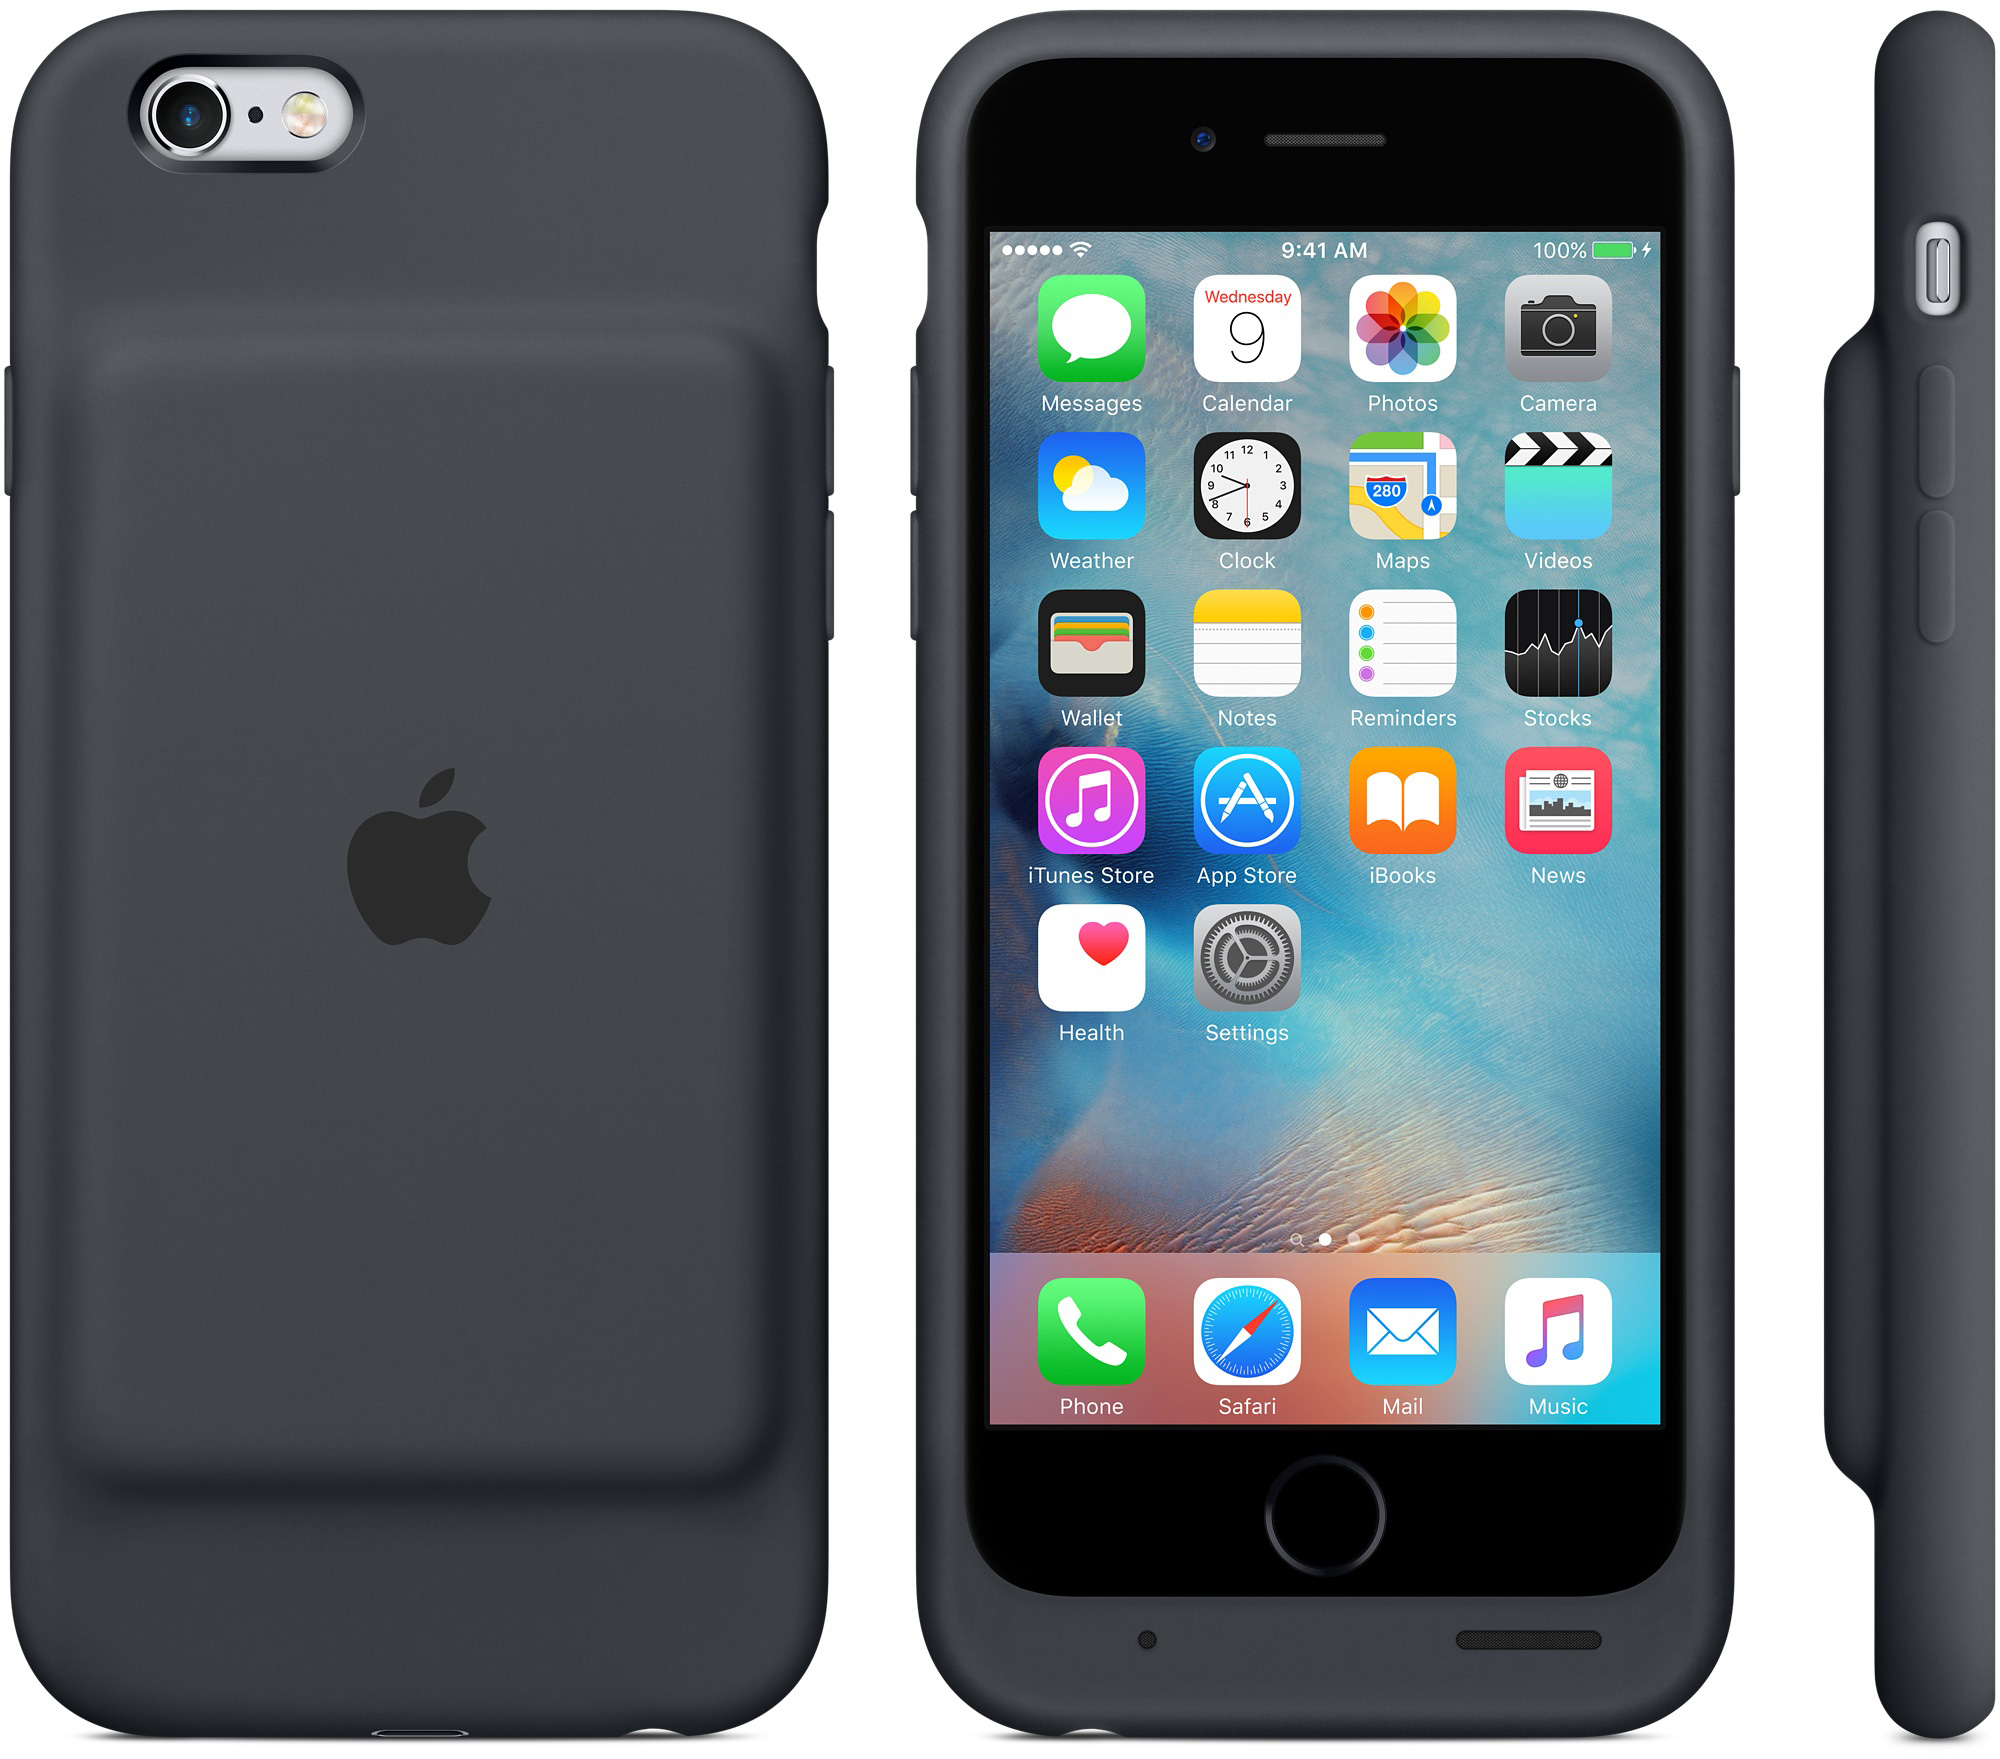 iPhone 6s Smart Battery Case - Charcoal Gray